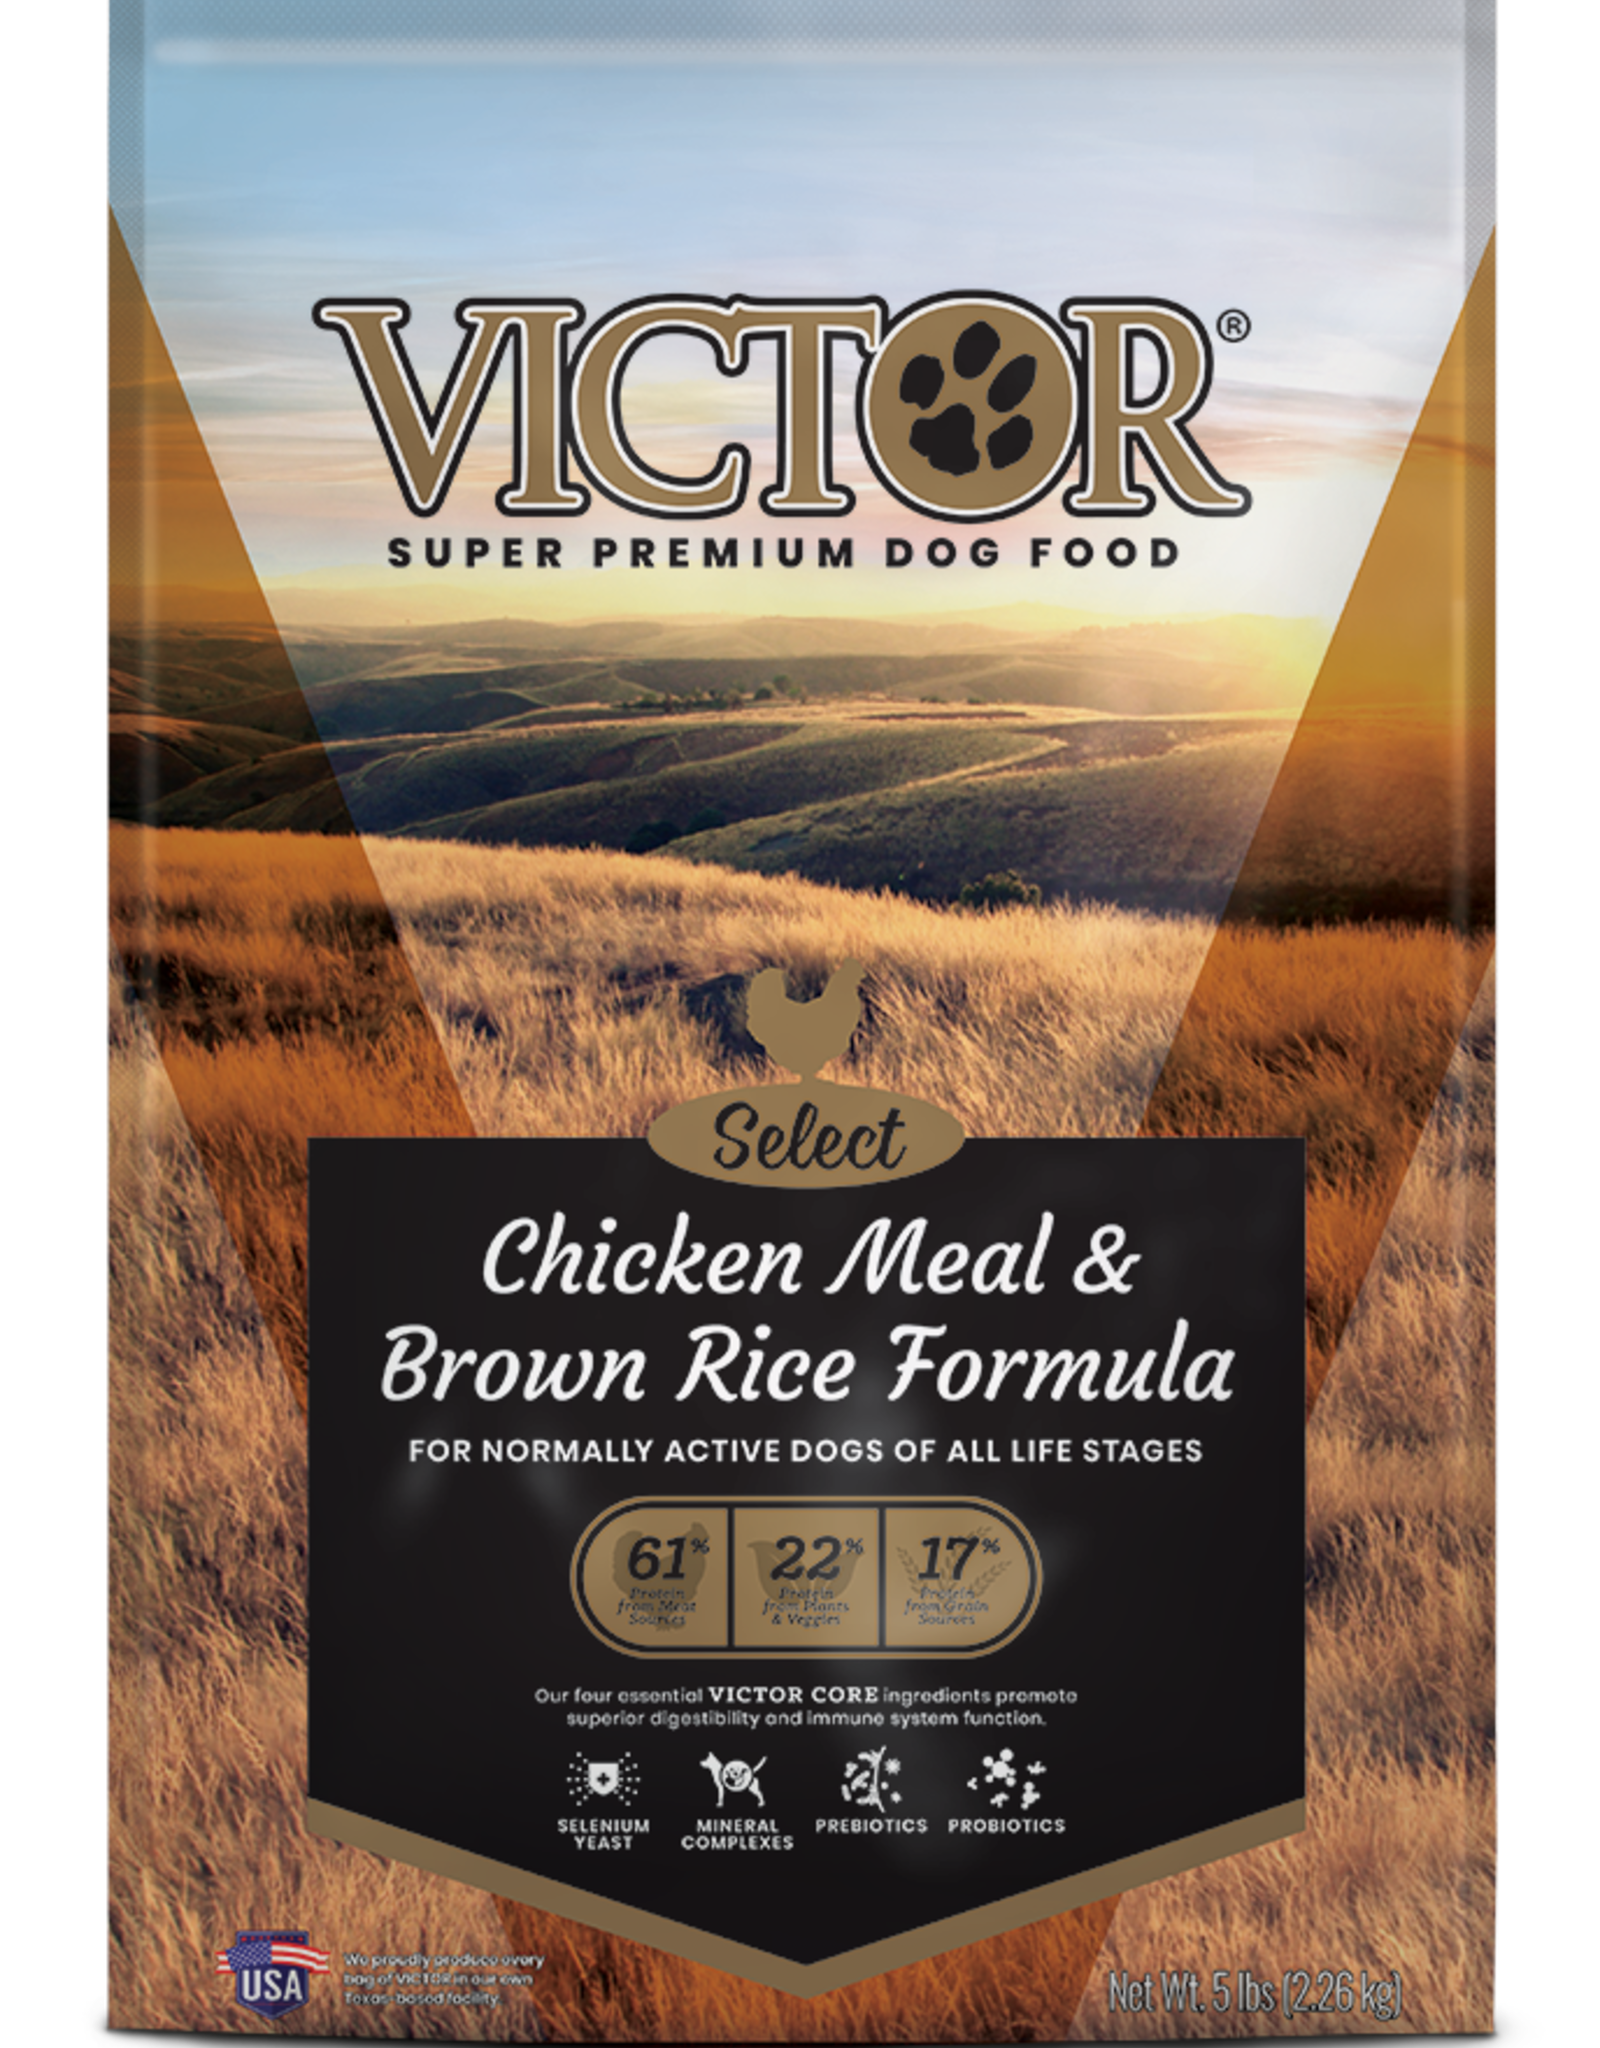 Victor Victor Dog Food Chicken Meal & Brown Rice